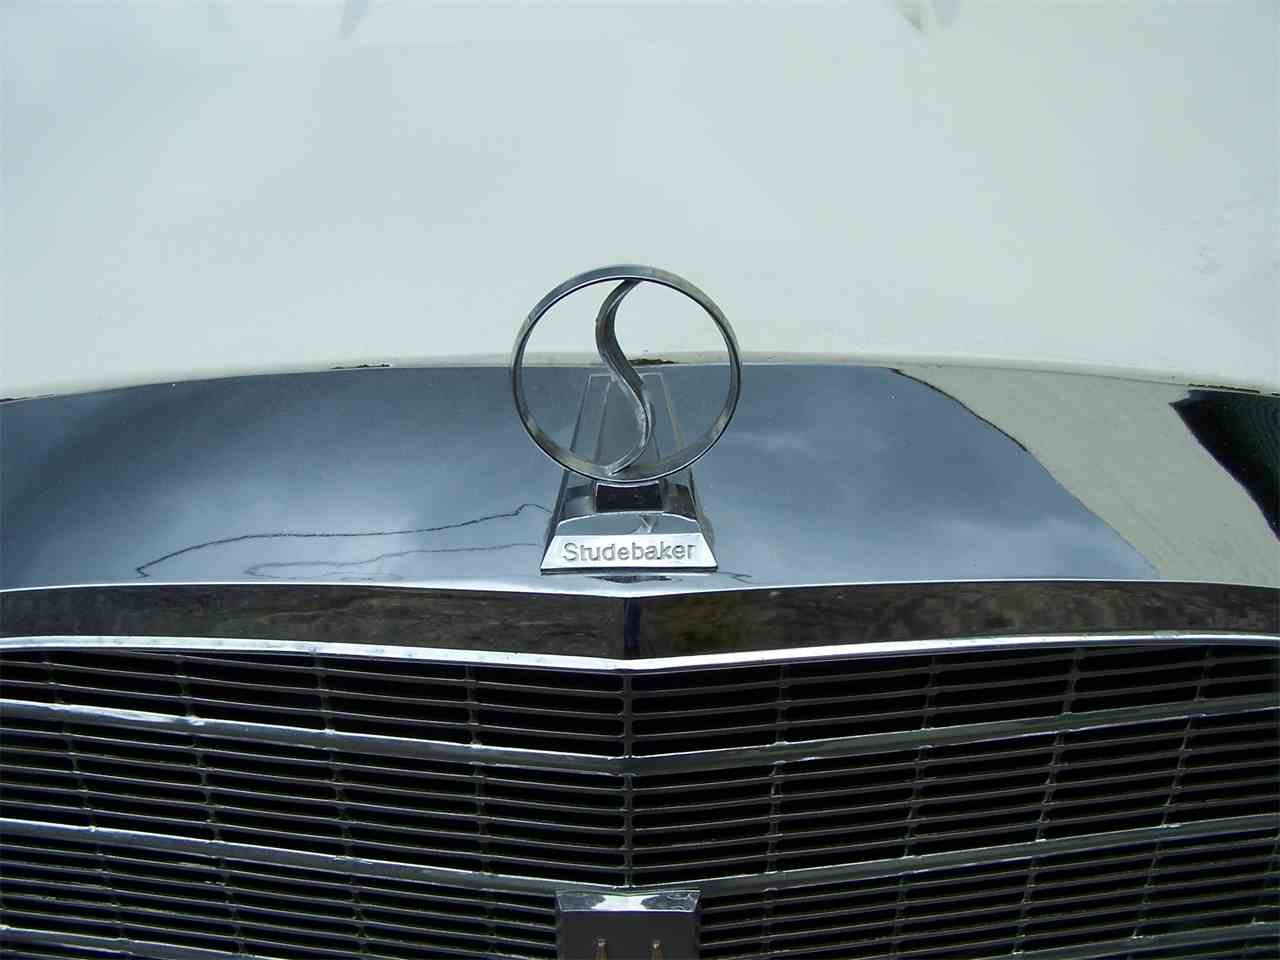 Large Picture of '64 Studebaker Super Hawk located in Virginia Offered by Smith Automotive Investments - L409